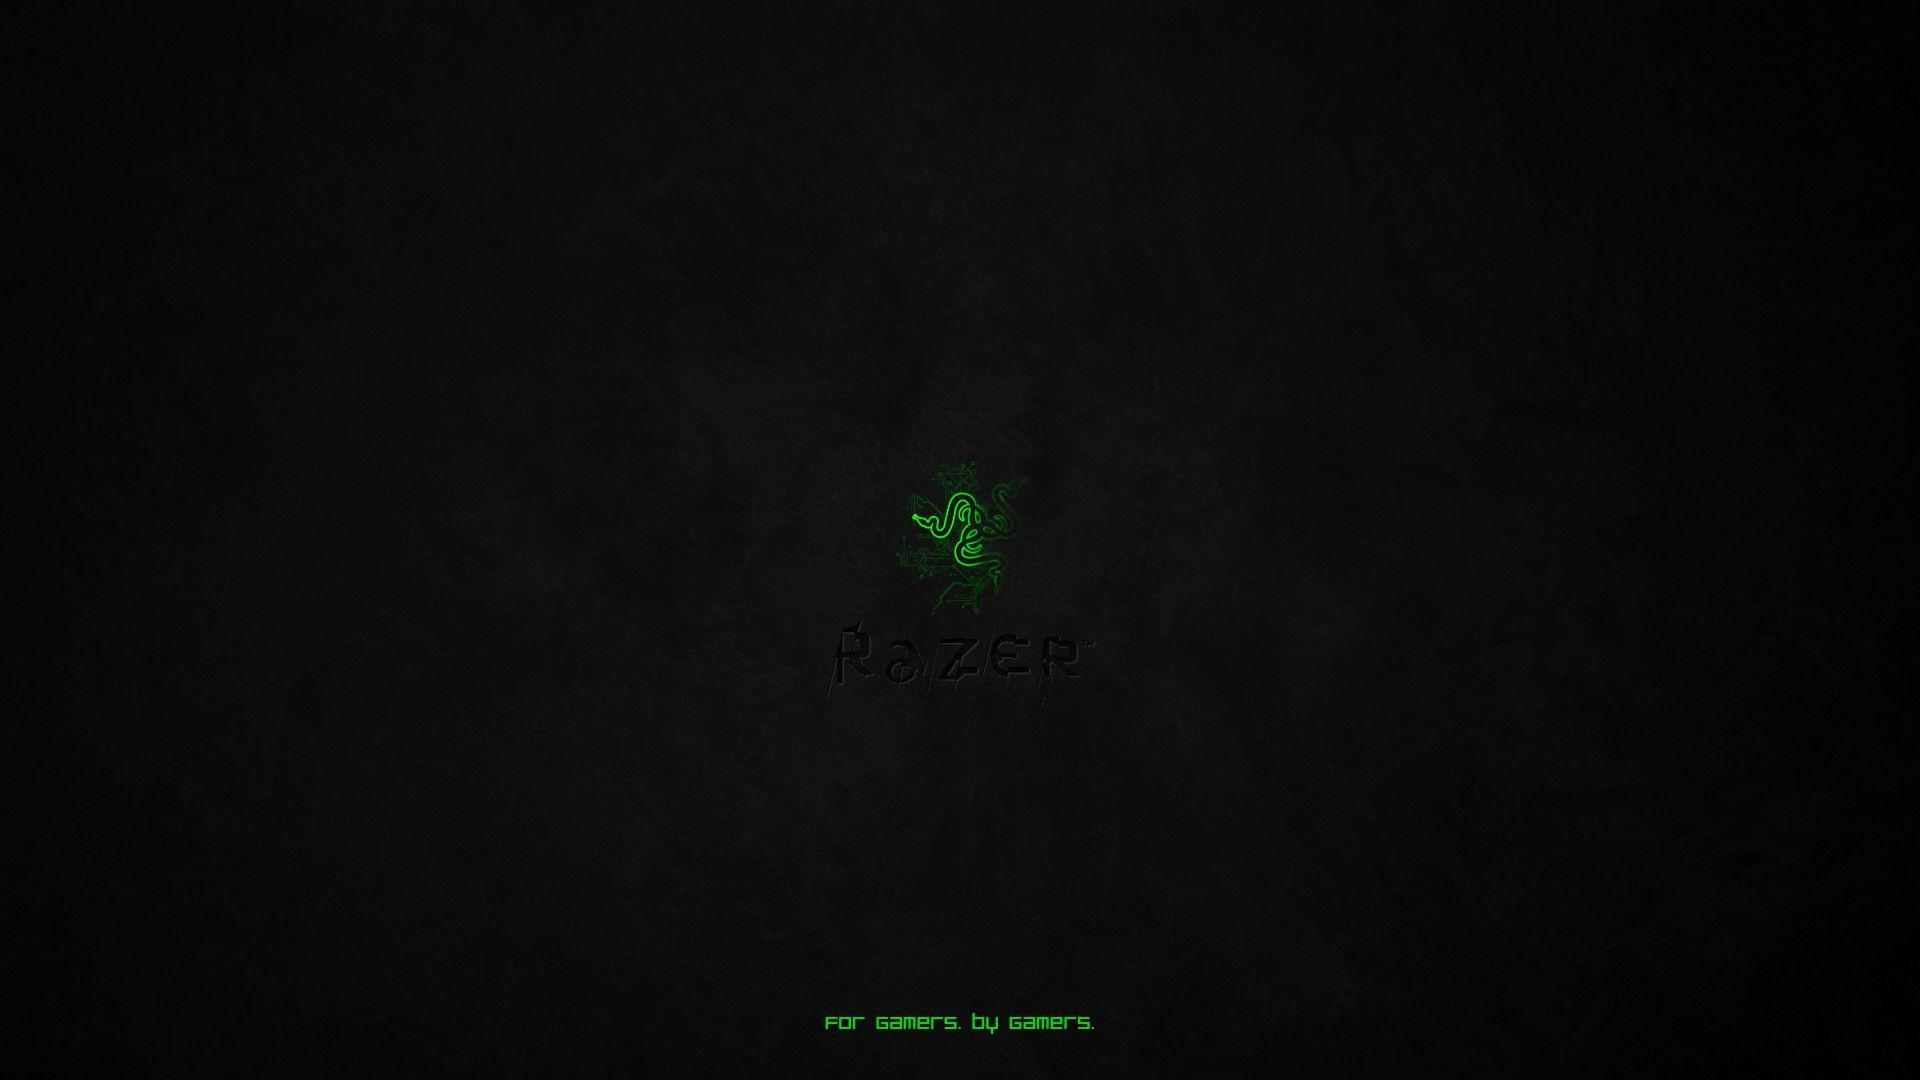 Razer Logo Hd Wallpapers Wallpaper Cave